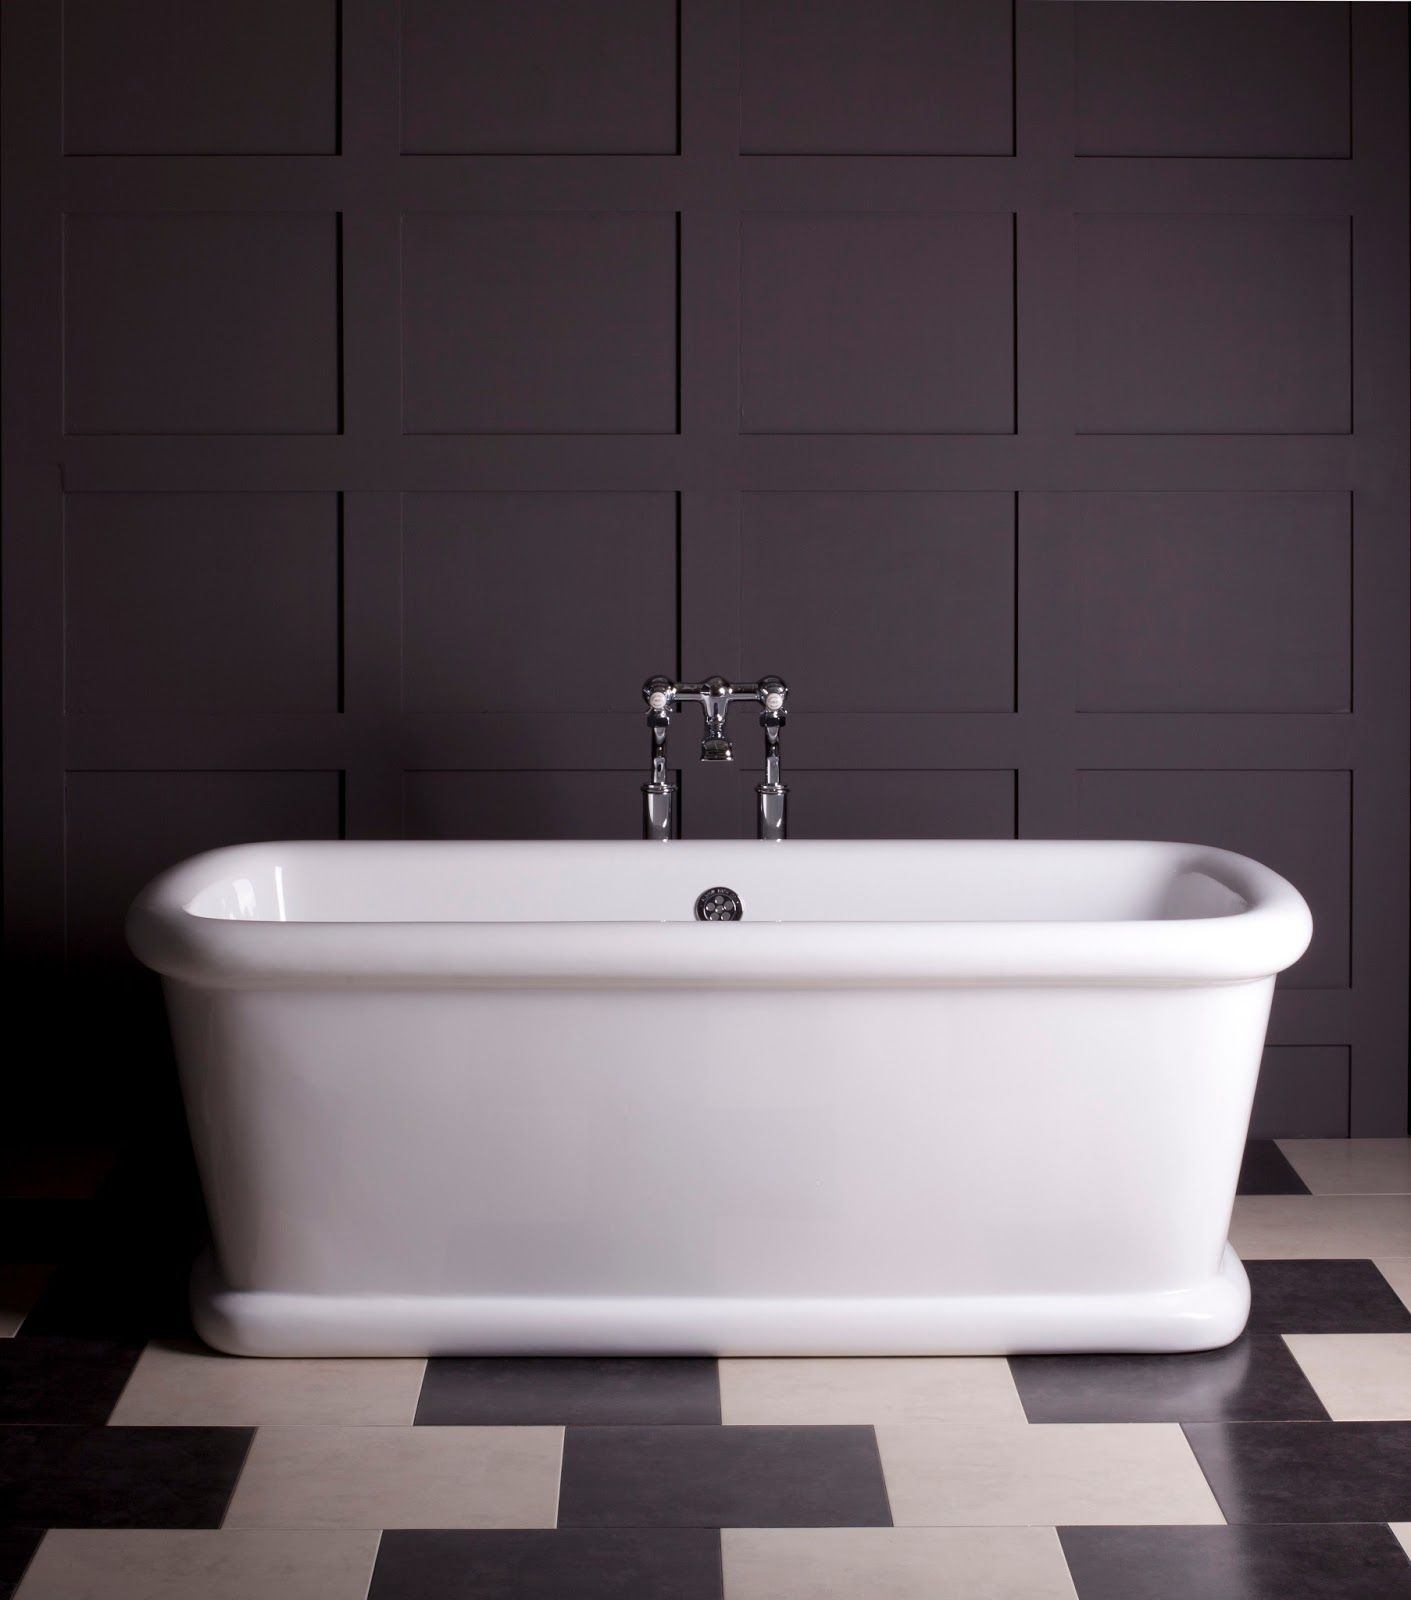 Albion Bath Company - manufacturers of fine free standing bath tubs ...